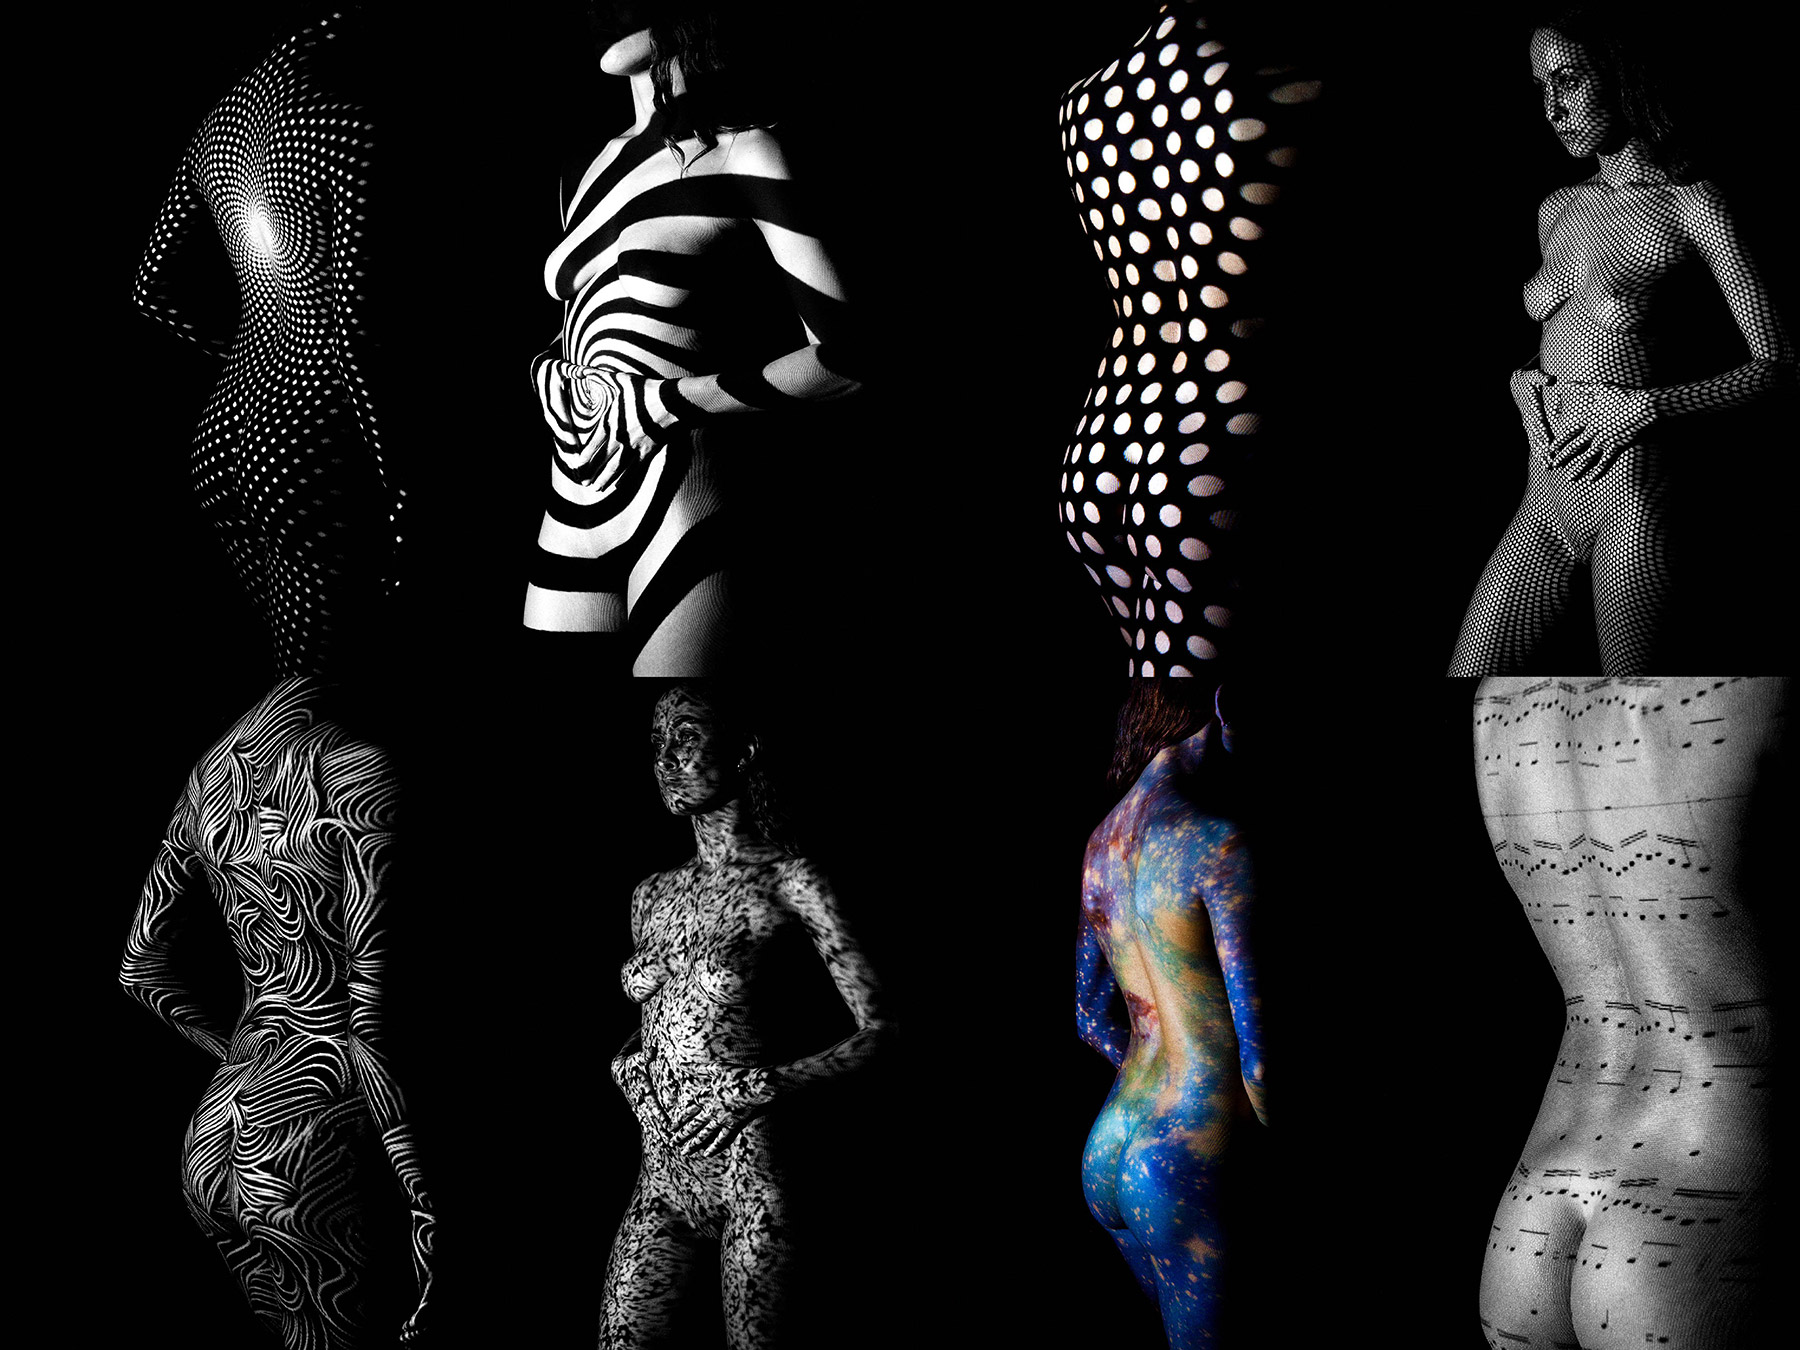 Explorations by Mischa Koorneef - Pro Photographer - Experimental Nudes Showcase